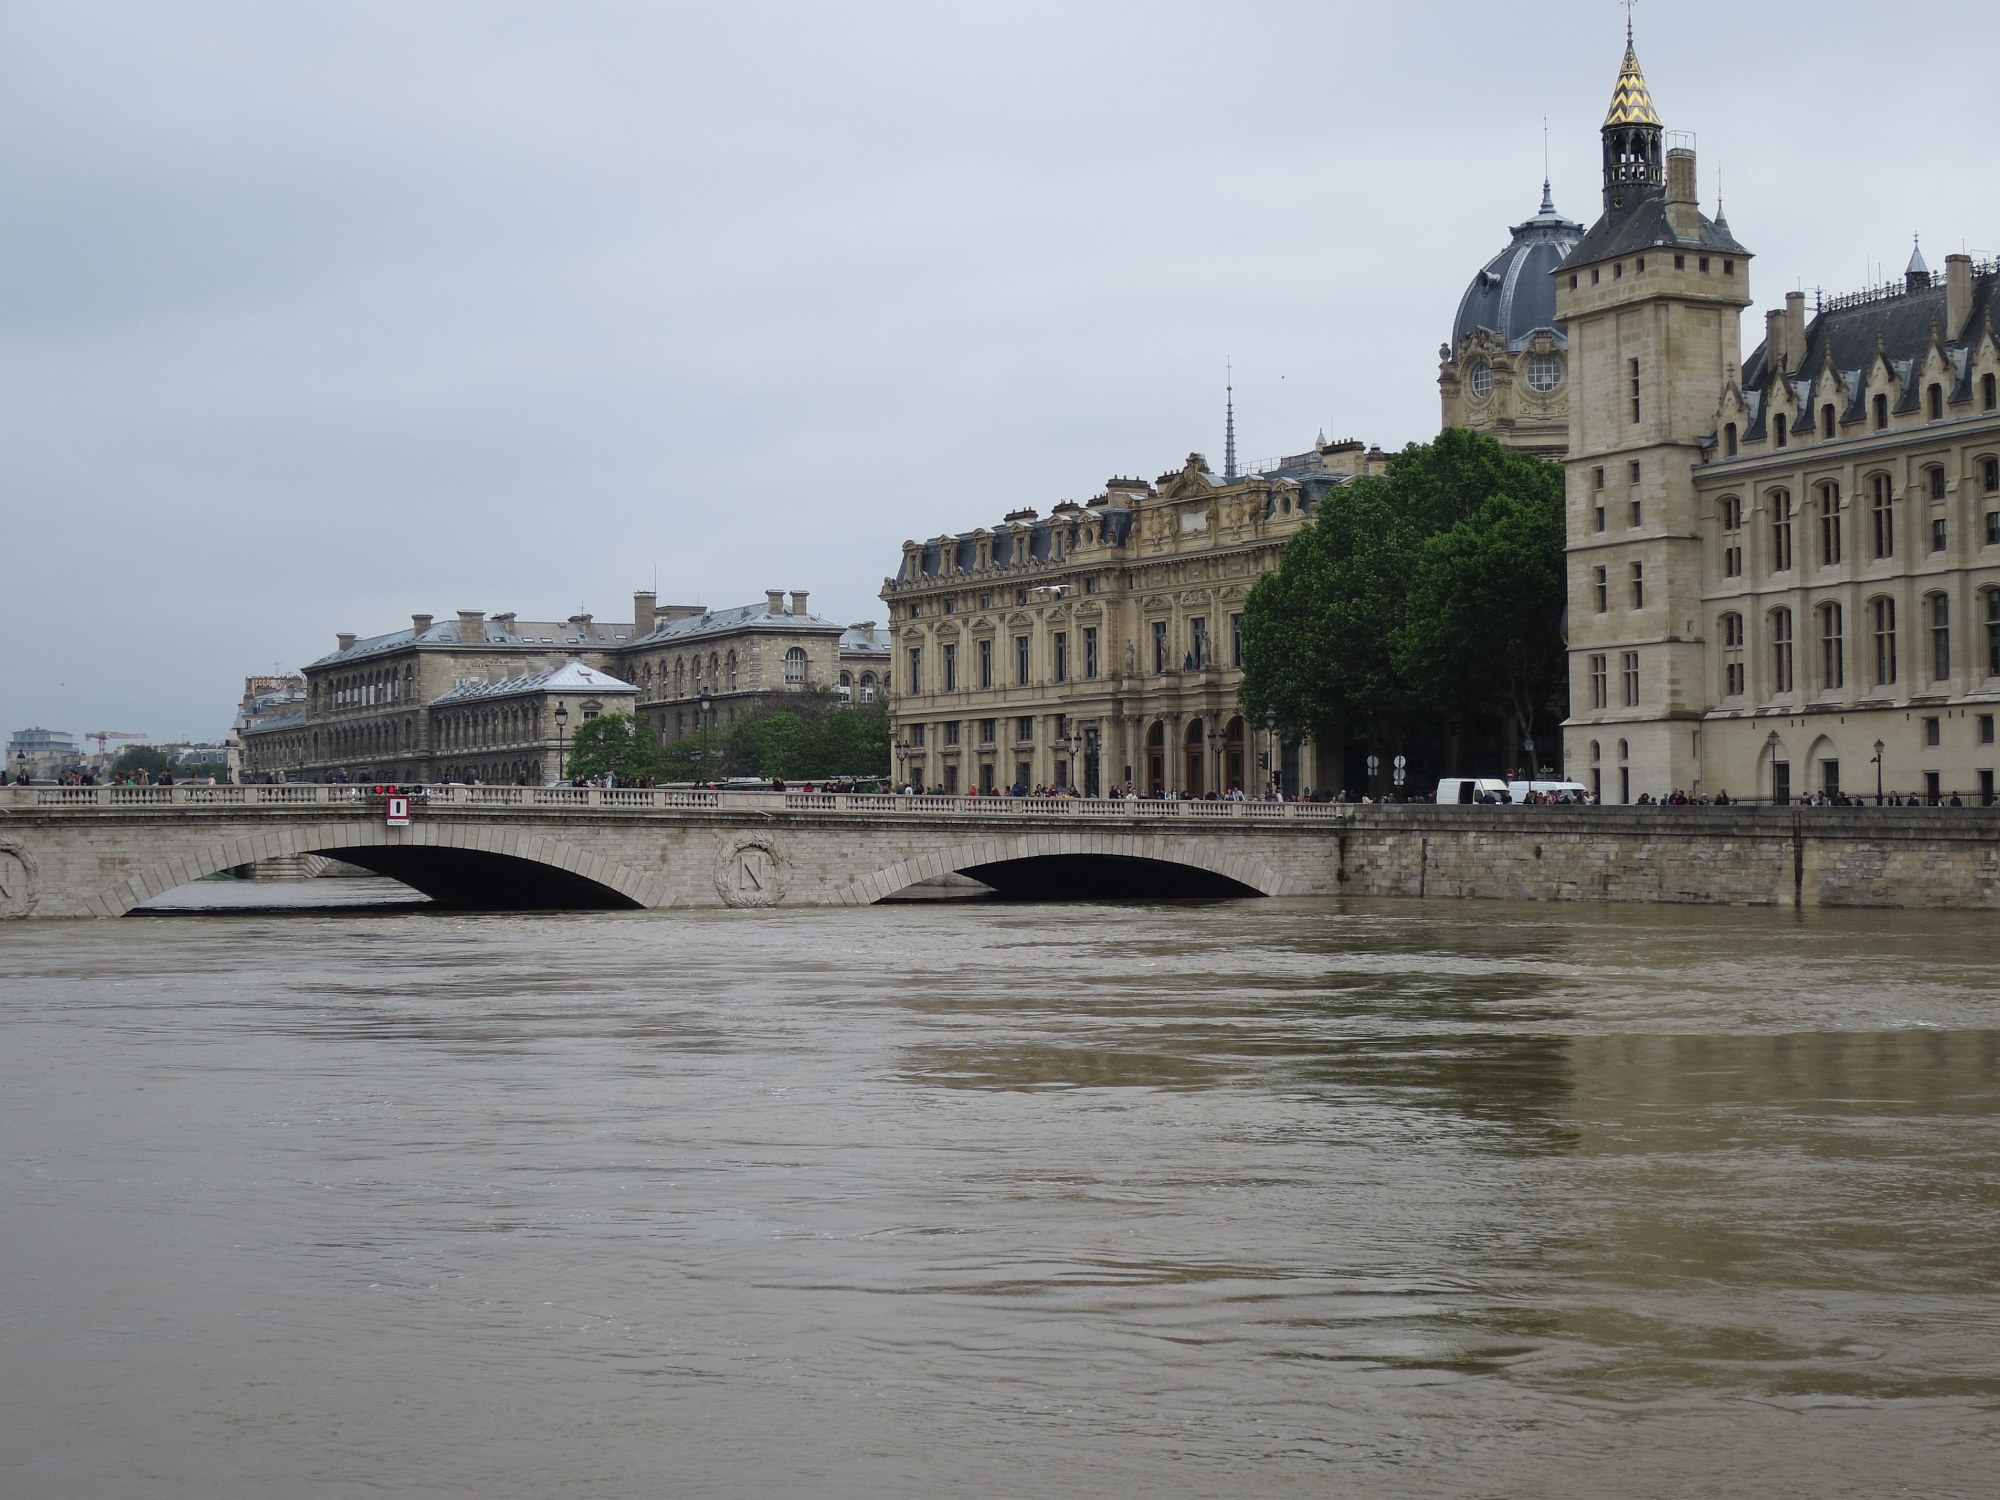 Pont au Change during the Great Flood of 2016